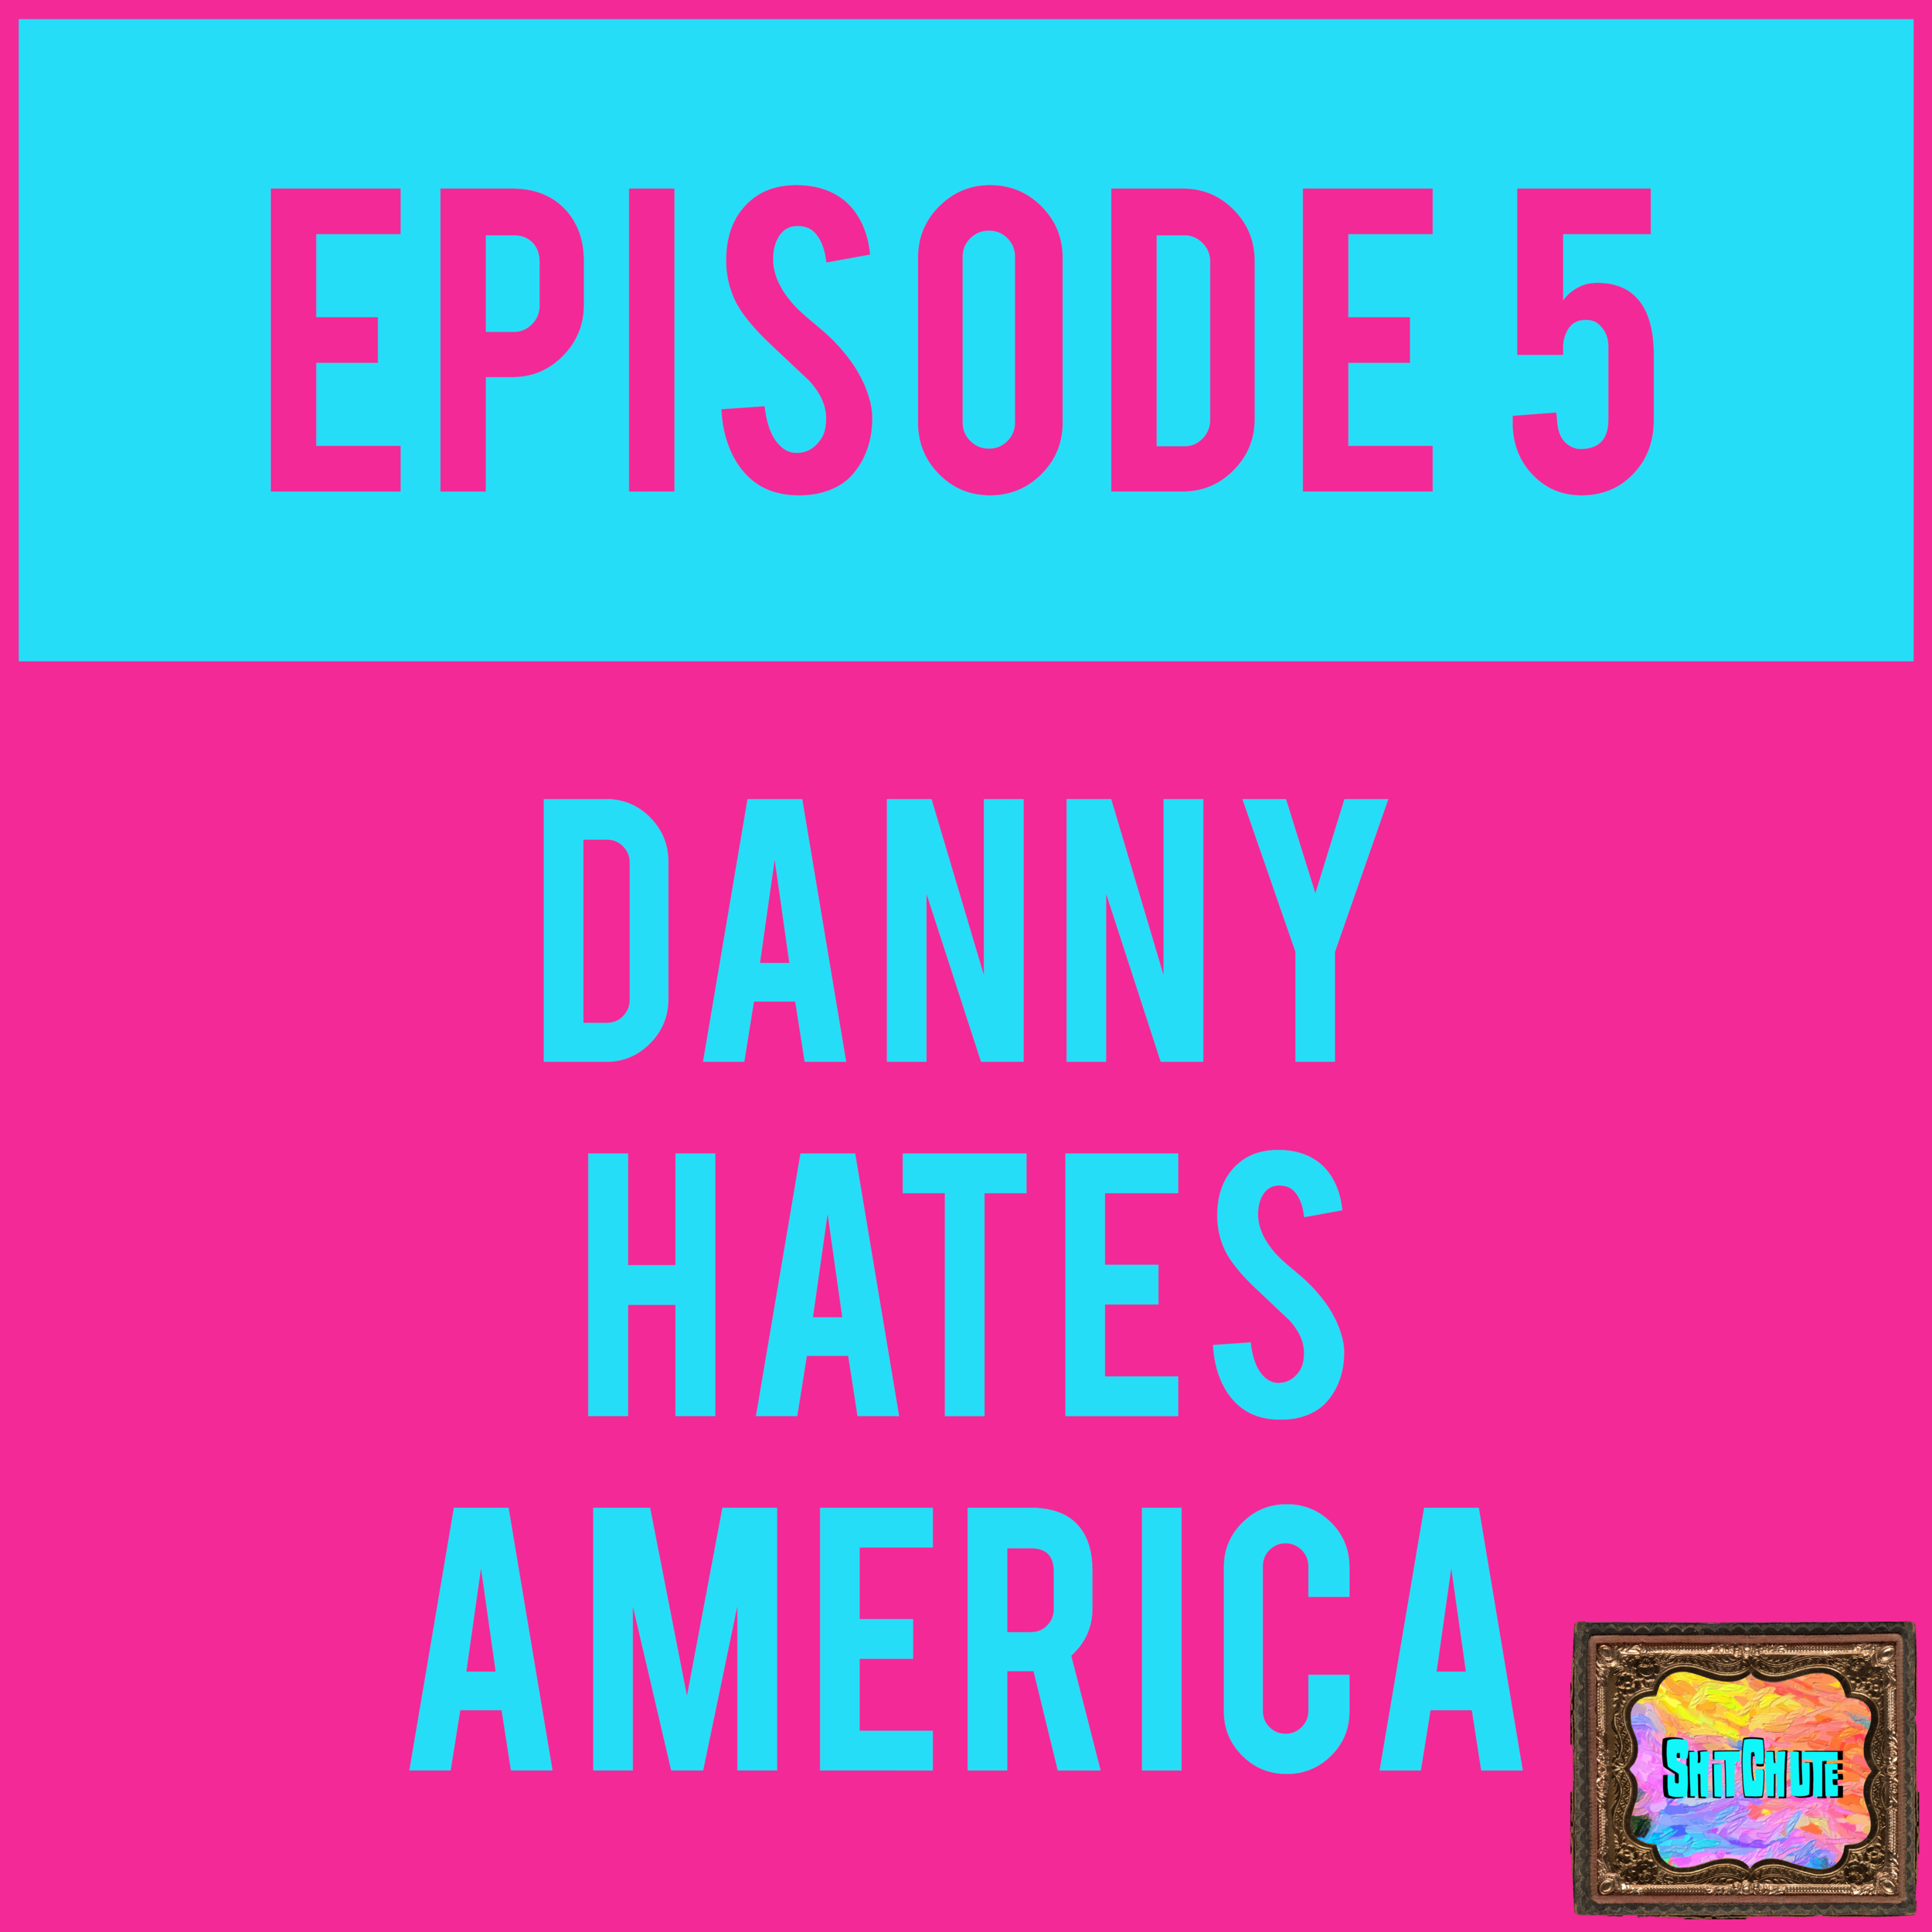 EPISODE 5 - The boiz had a TRAITOR on the bonus show? More importantly- hear all about how Milkman Danny shit his pants in a department store and had to be wiped (with said soiled pants) in his mom's mini-van, and so, so much more. Only $5 a month on Patreon and you could have unfettered access to other disgusting stories that we can all laugh at.